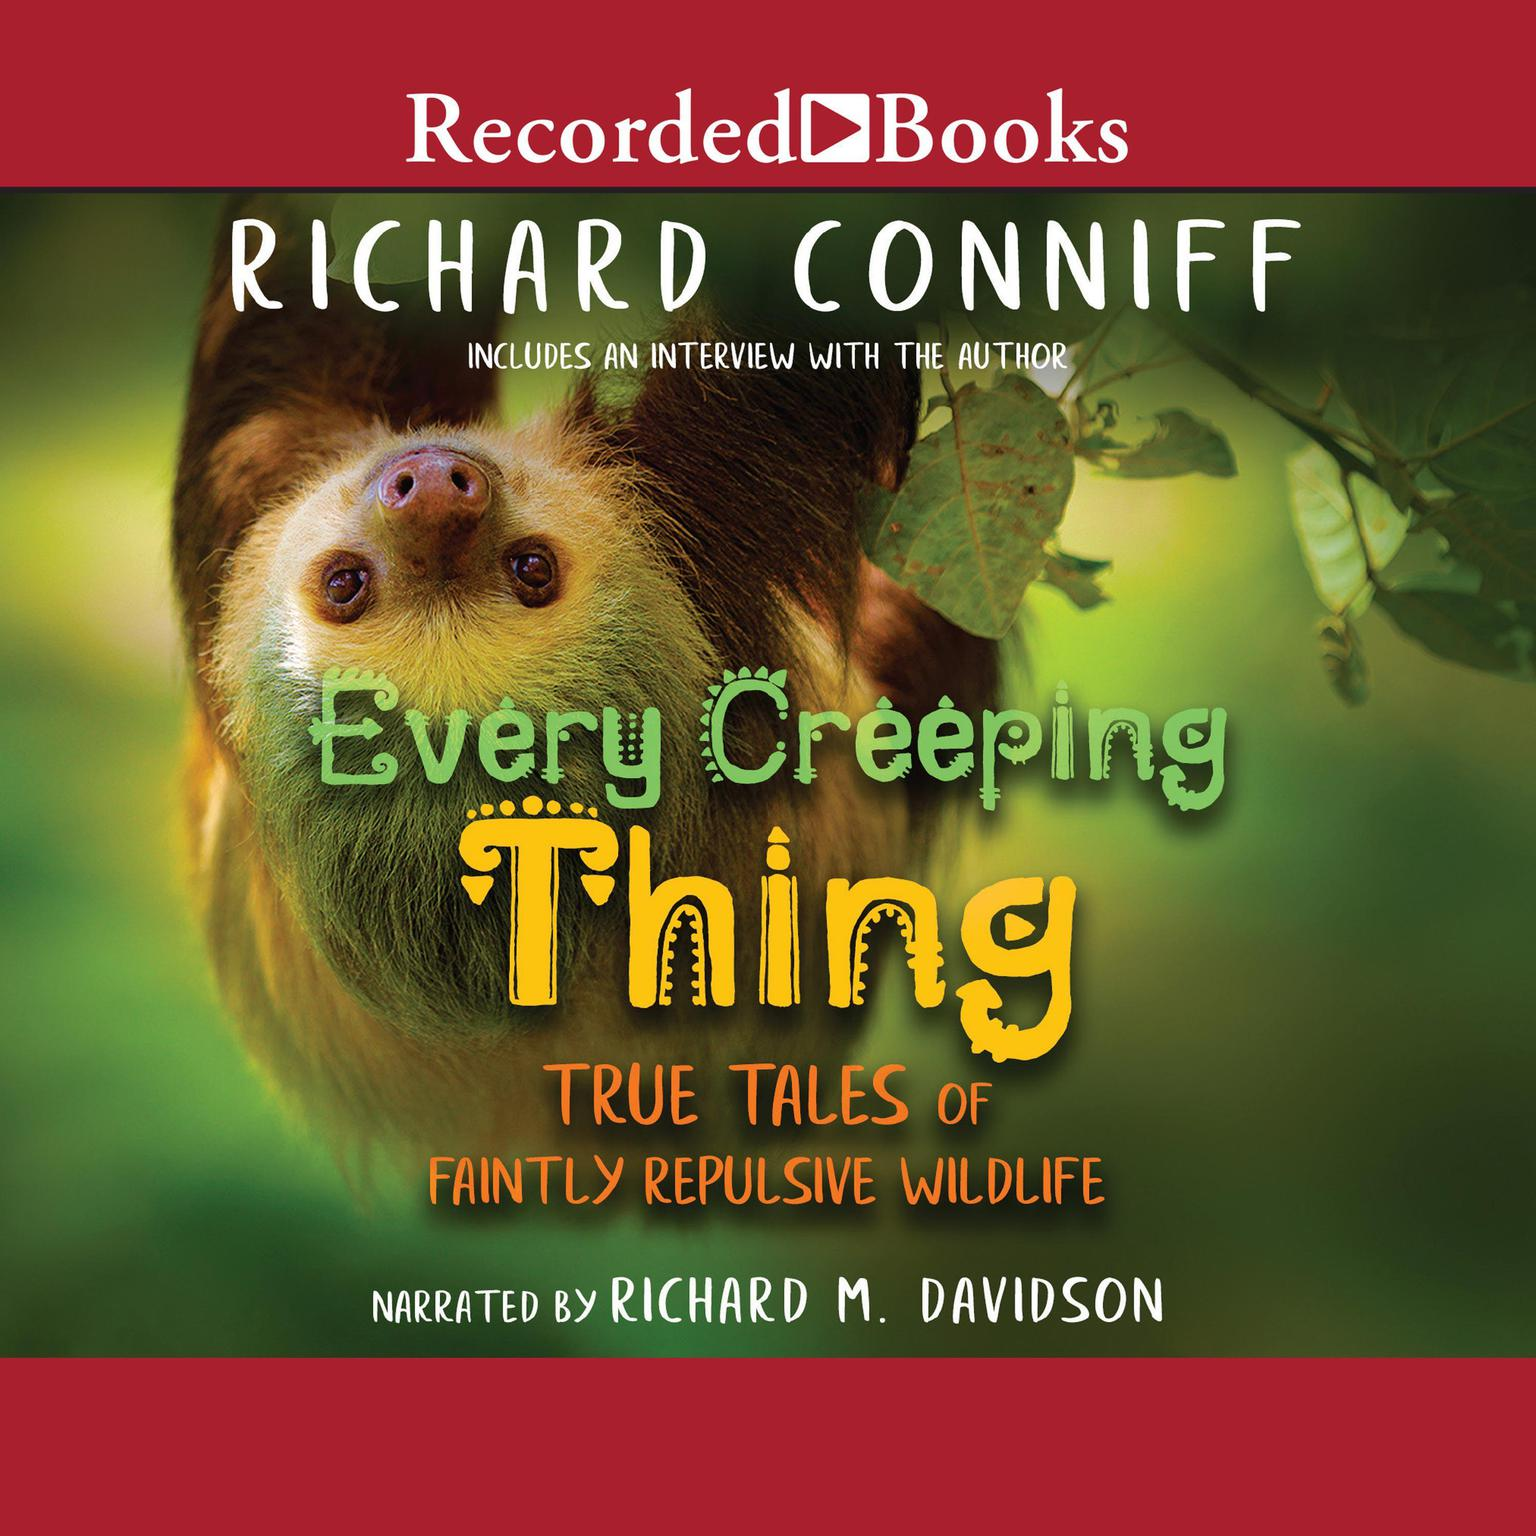 Every Creeping Thing: True Tales of Faintly Repulsive Wildlife Audiobook, by Richard Conniff